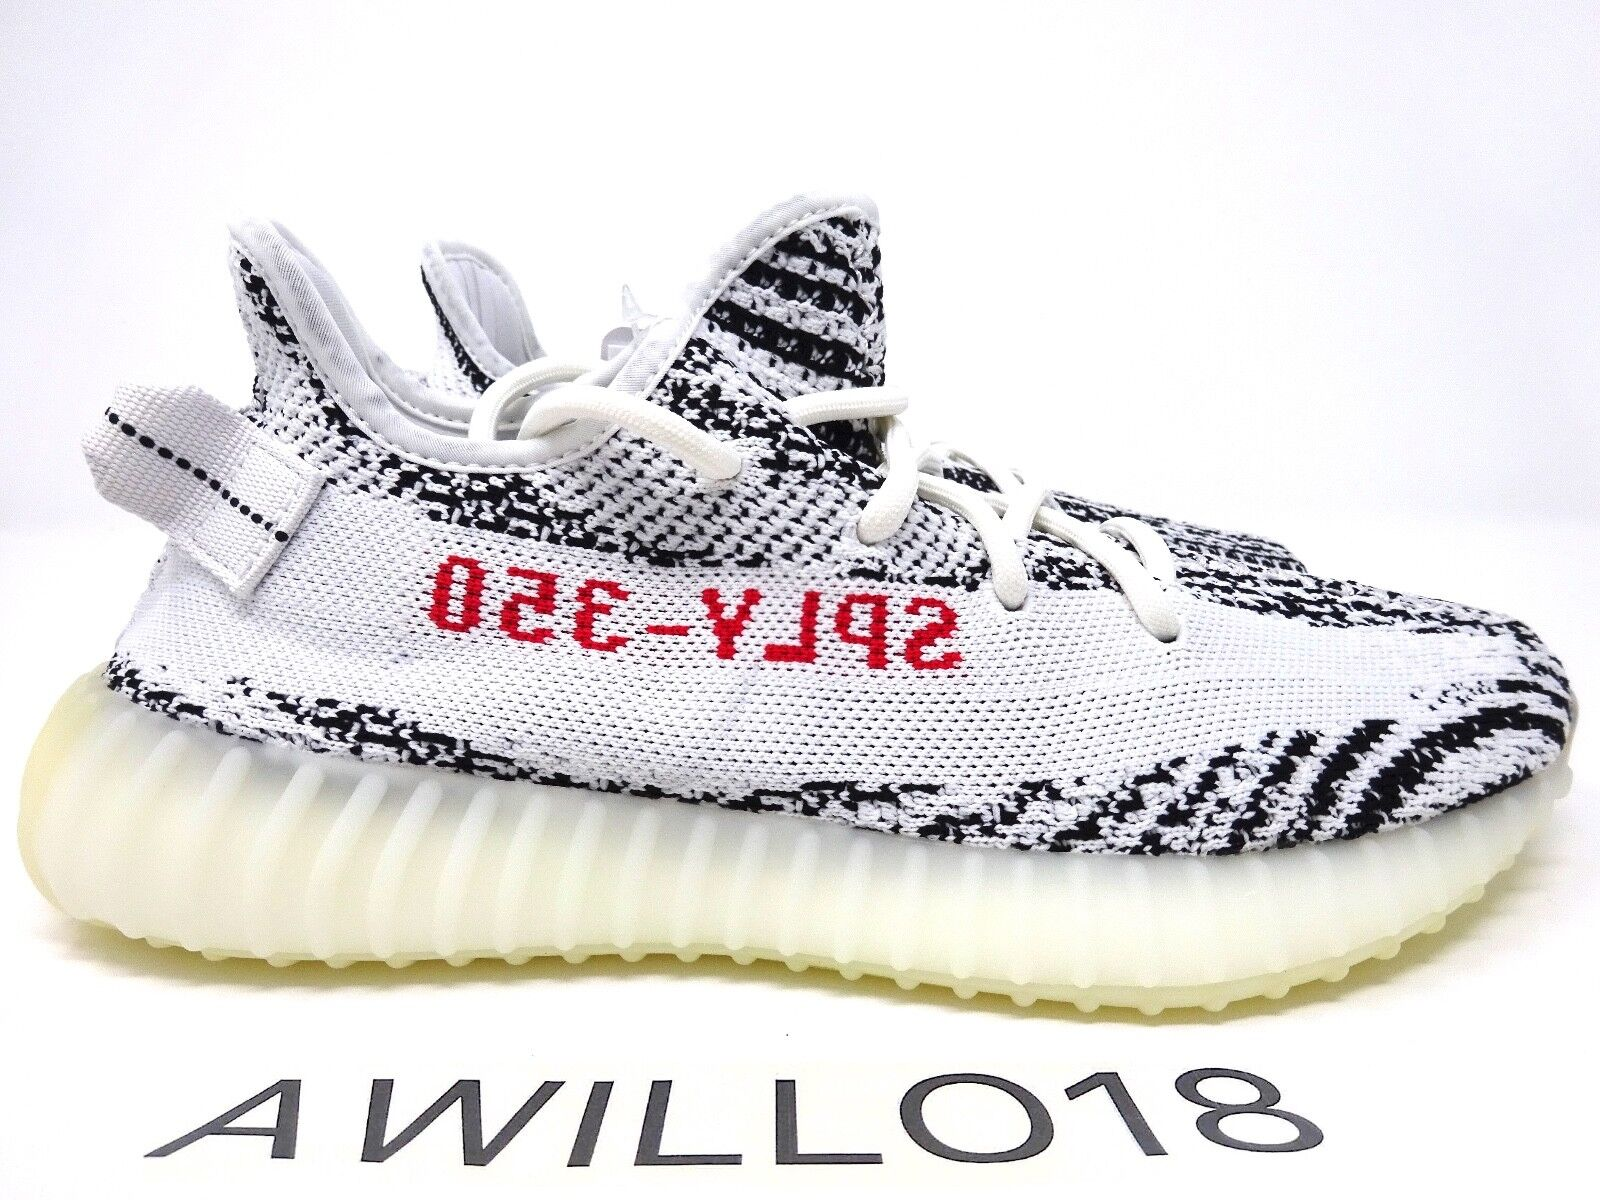 370cd56a6 adidas Yeezy Boost 350 Zebra V2 Size 7.5 UK US 8 Kanye West 100 ...